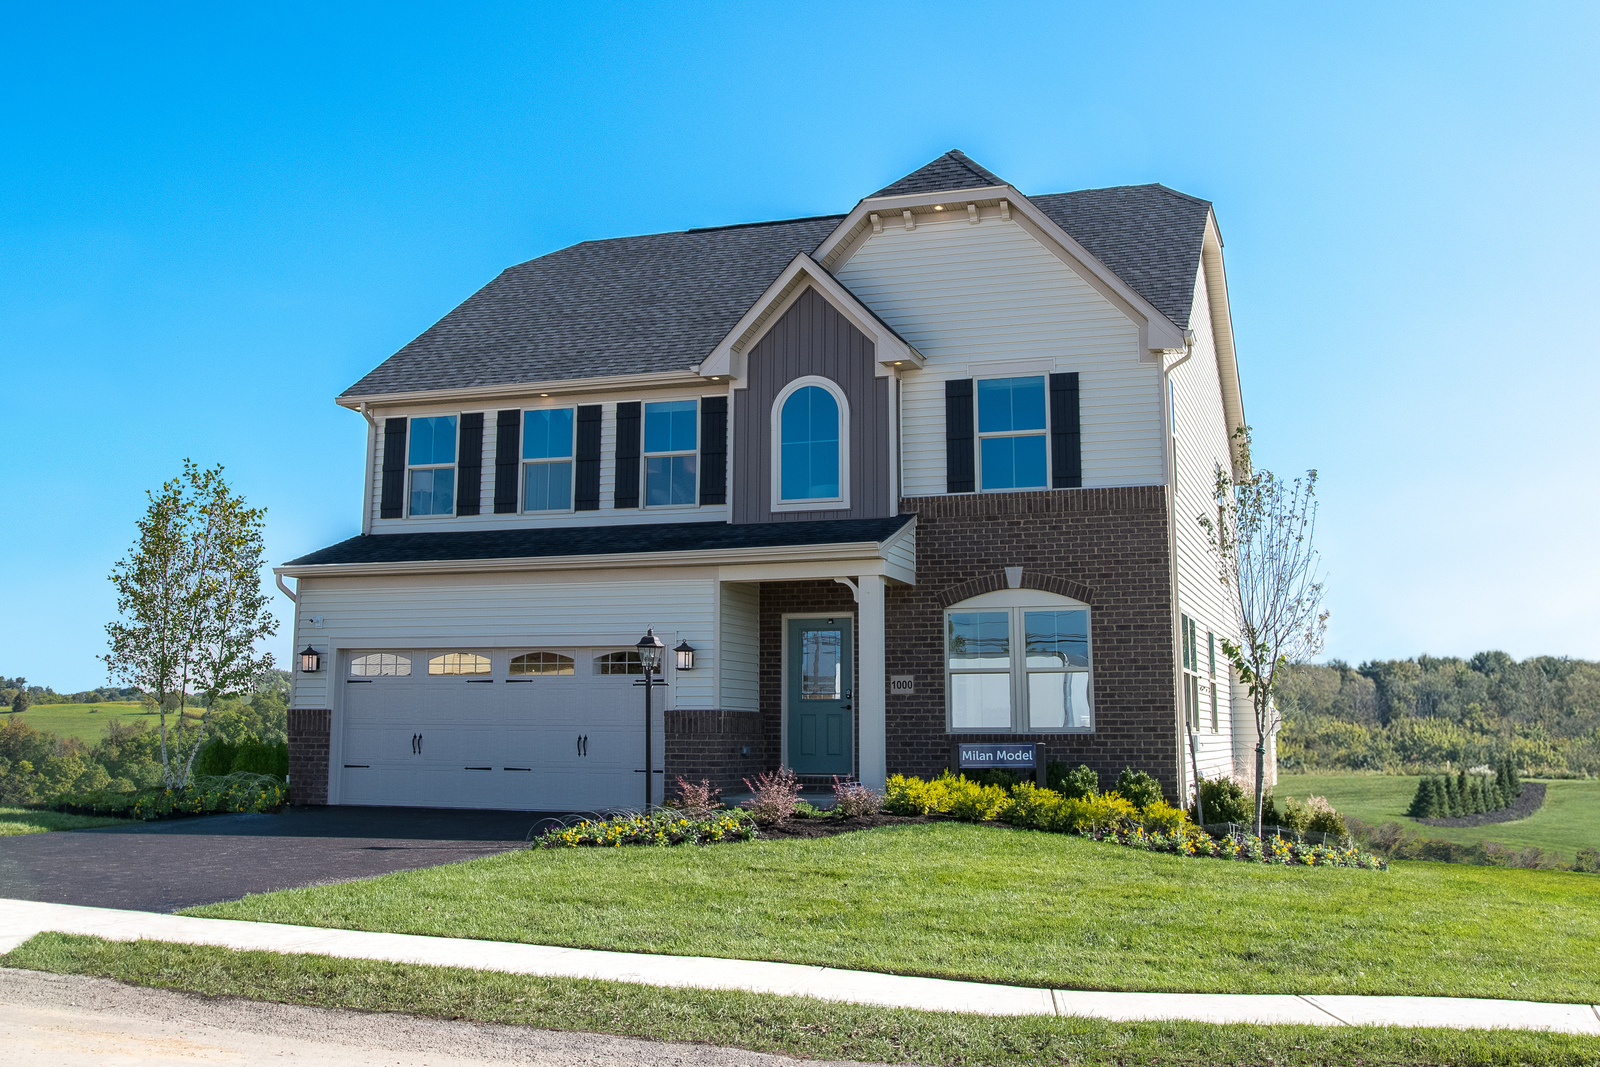 New Homes For Sale At Pinnacle Pointe In South Fayette Pa Within